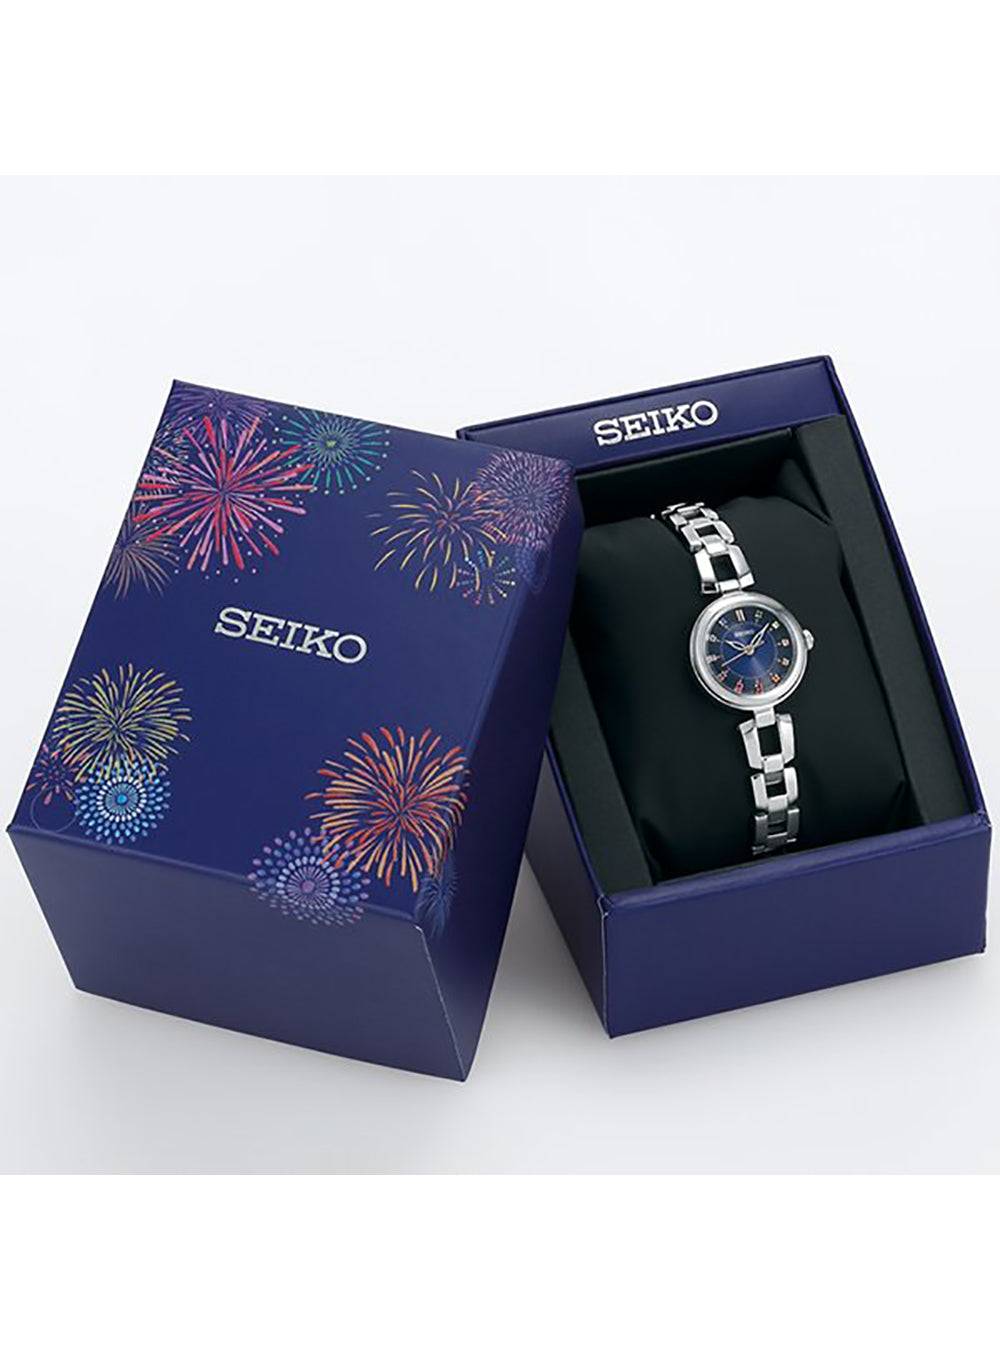 SEIKO SELECTION 2020 SUMMER LIMITED EDITION SWFA191 WOMEN'S JDM